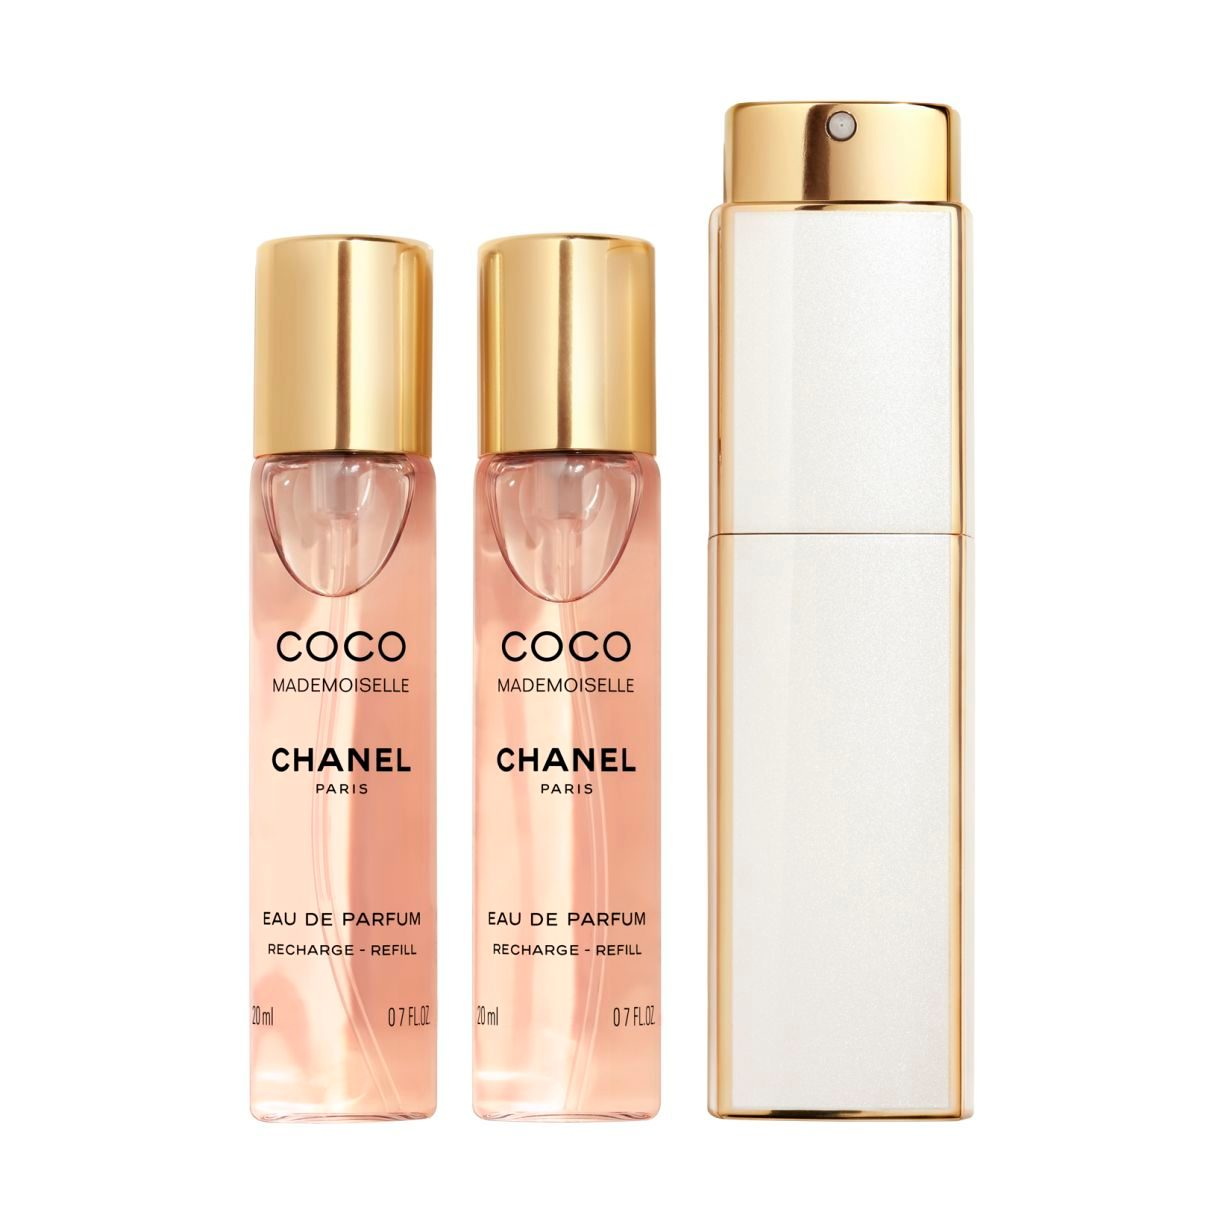 COCO MADEMOISELLE ПАРФЮМЕРНАЯ ВОДА TWIST AND SPRAY